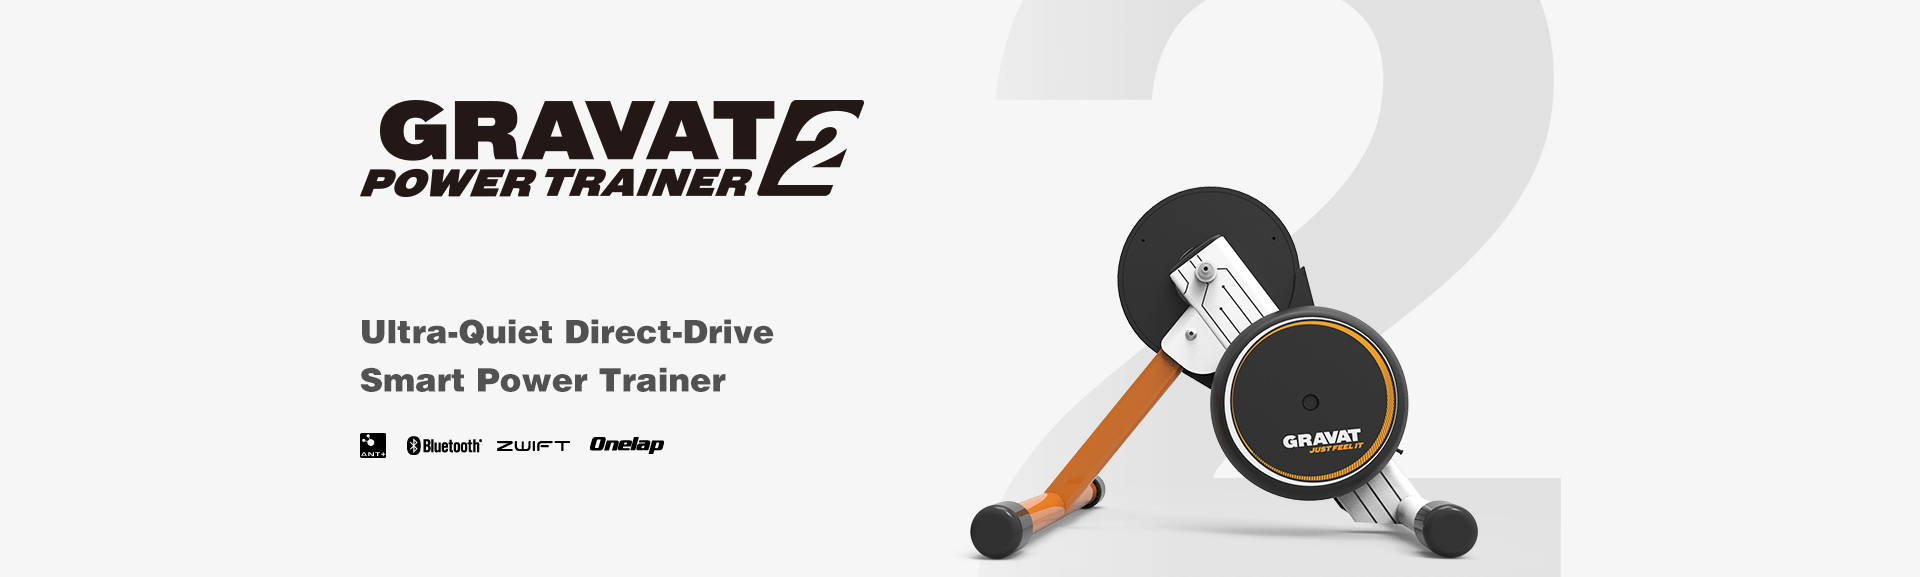 ultra-quiet direct-drive smart power trainer